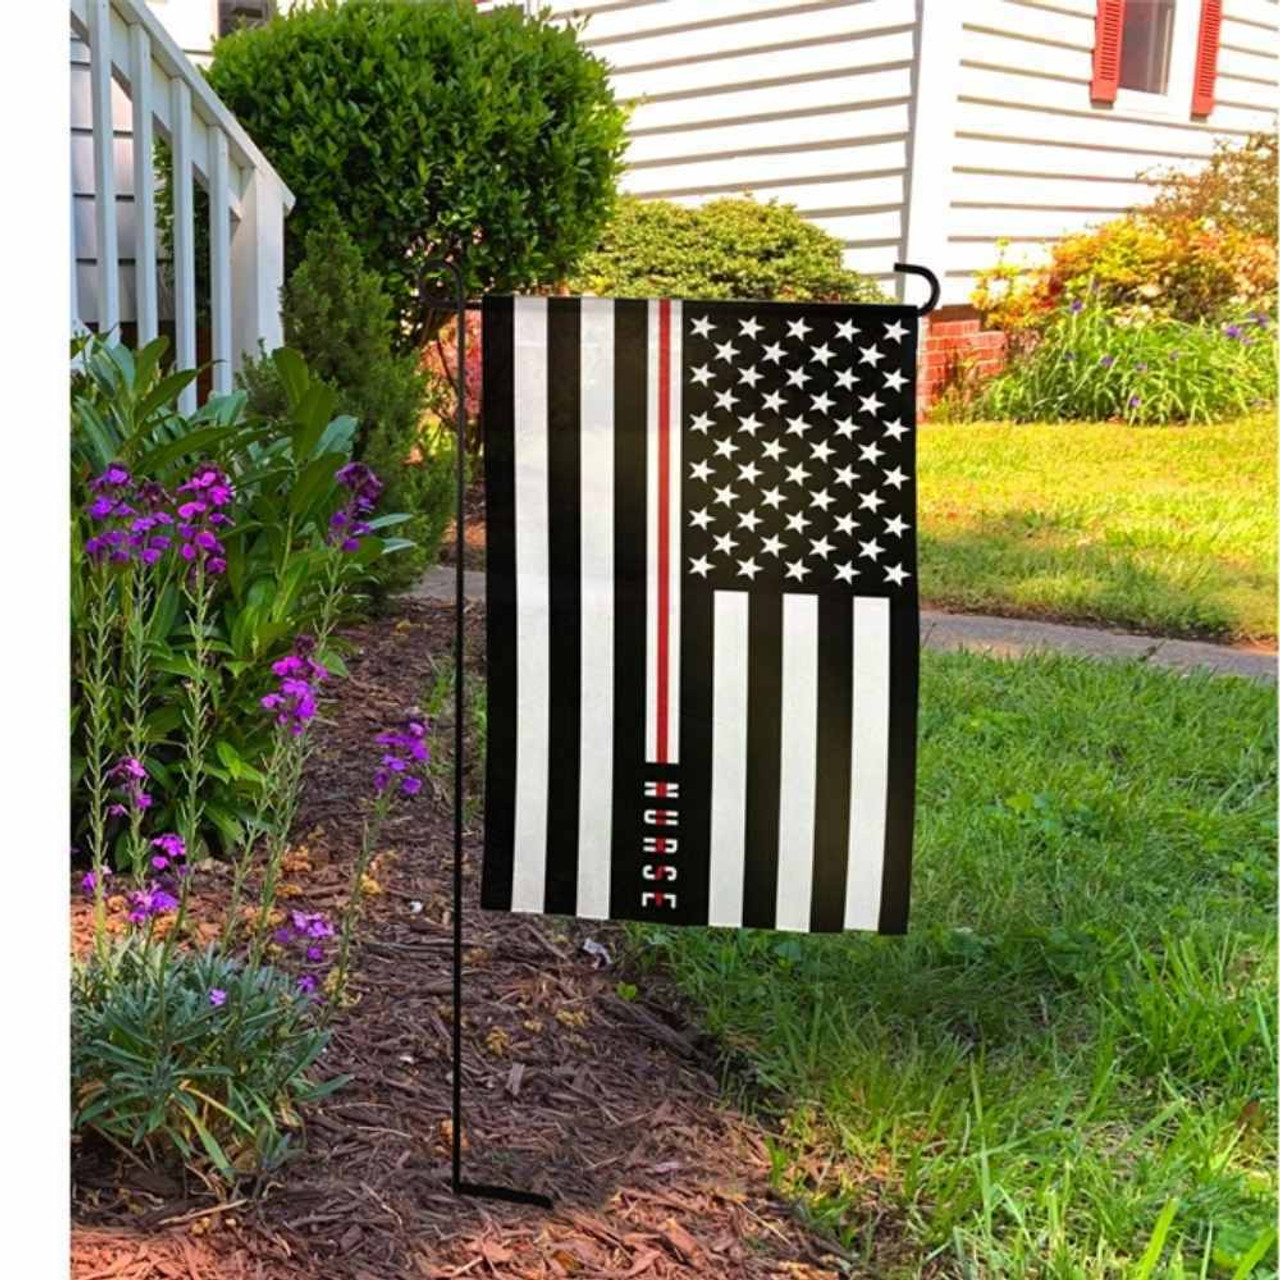 Black and white American flag, the word NURSE is embroidered over a red line on a garden pole in front of a house.